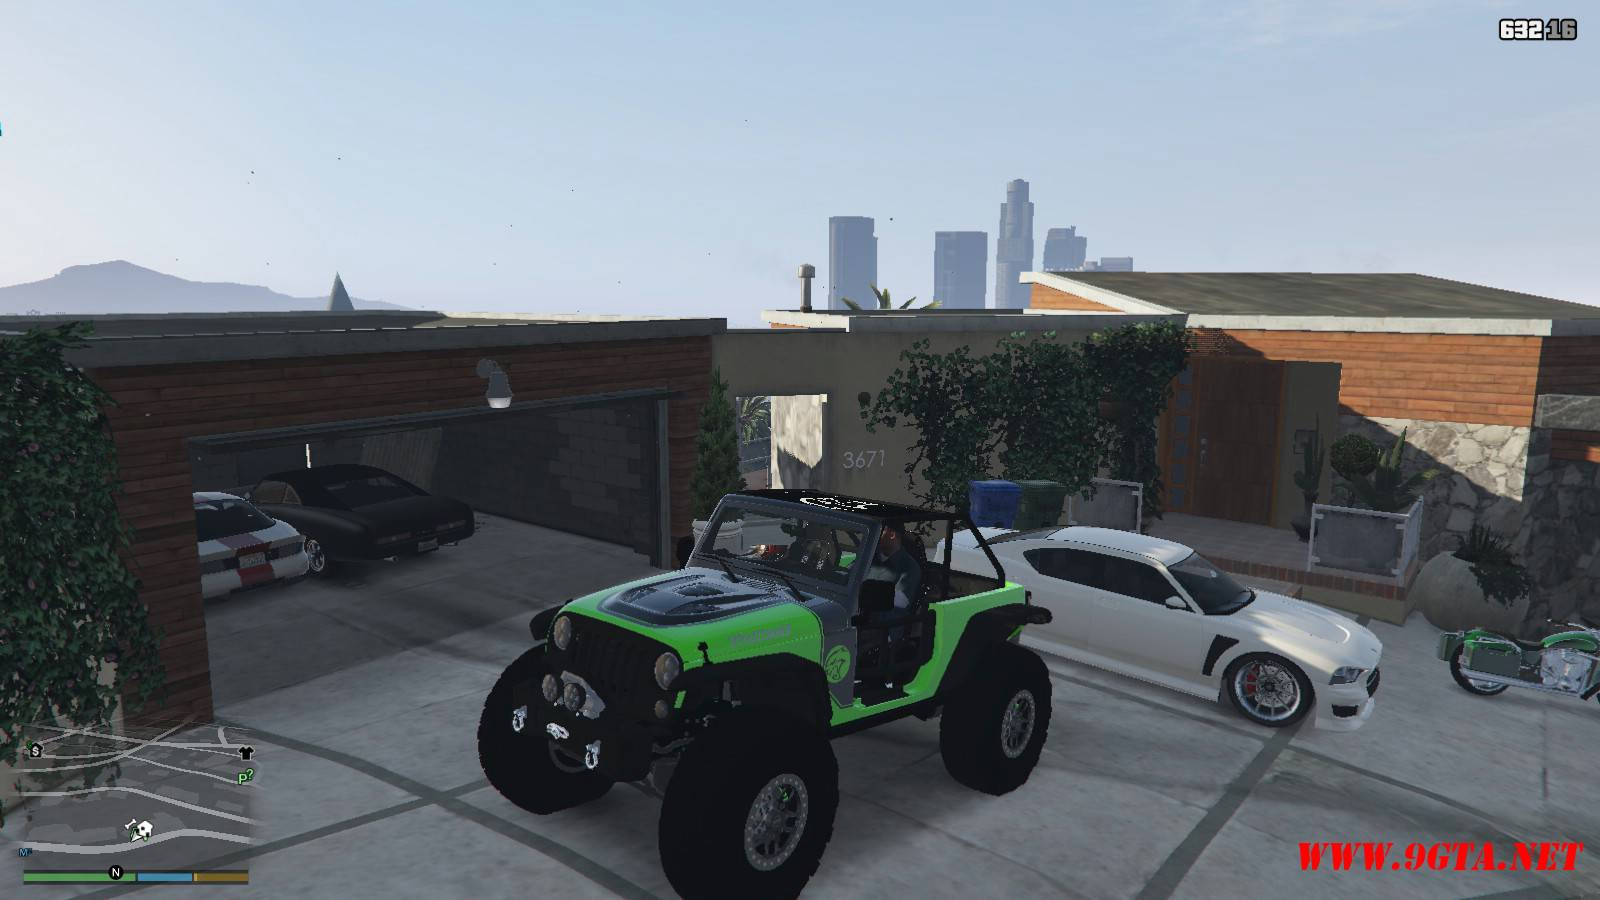 Jeep Trailcat Concept v2 Mod For GTA5 (6)